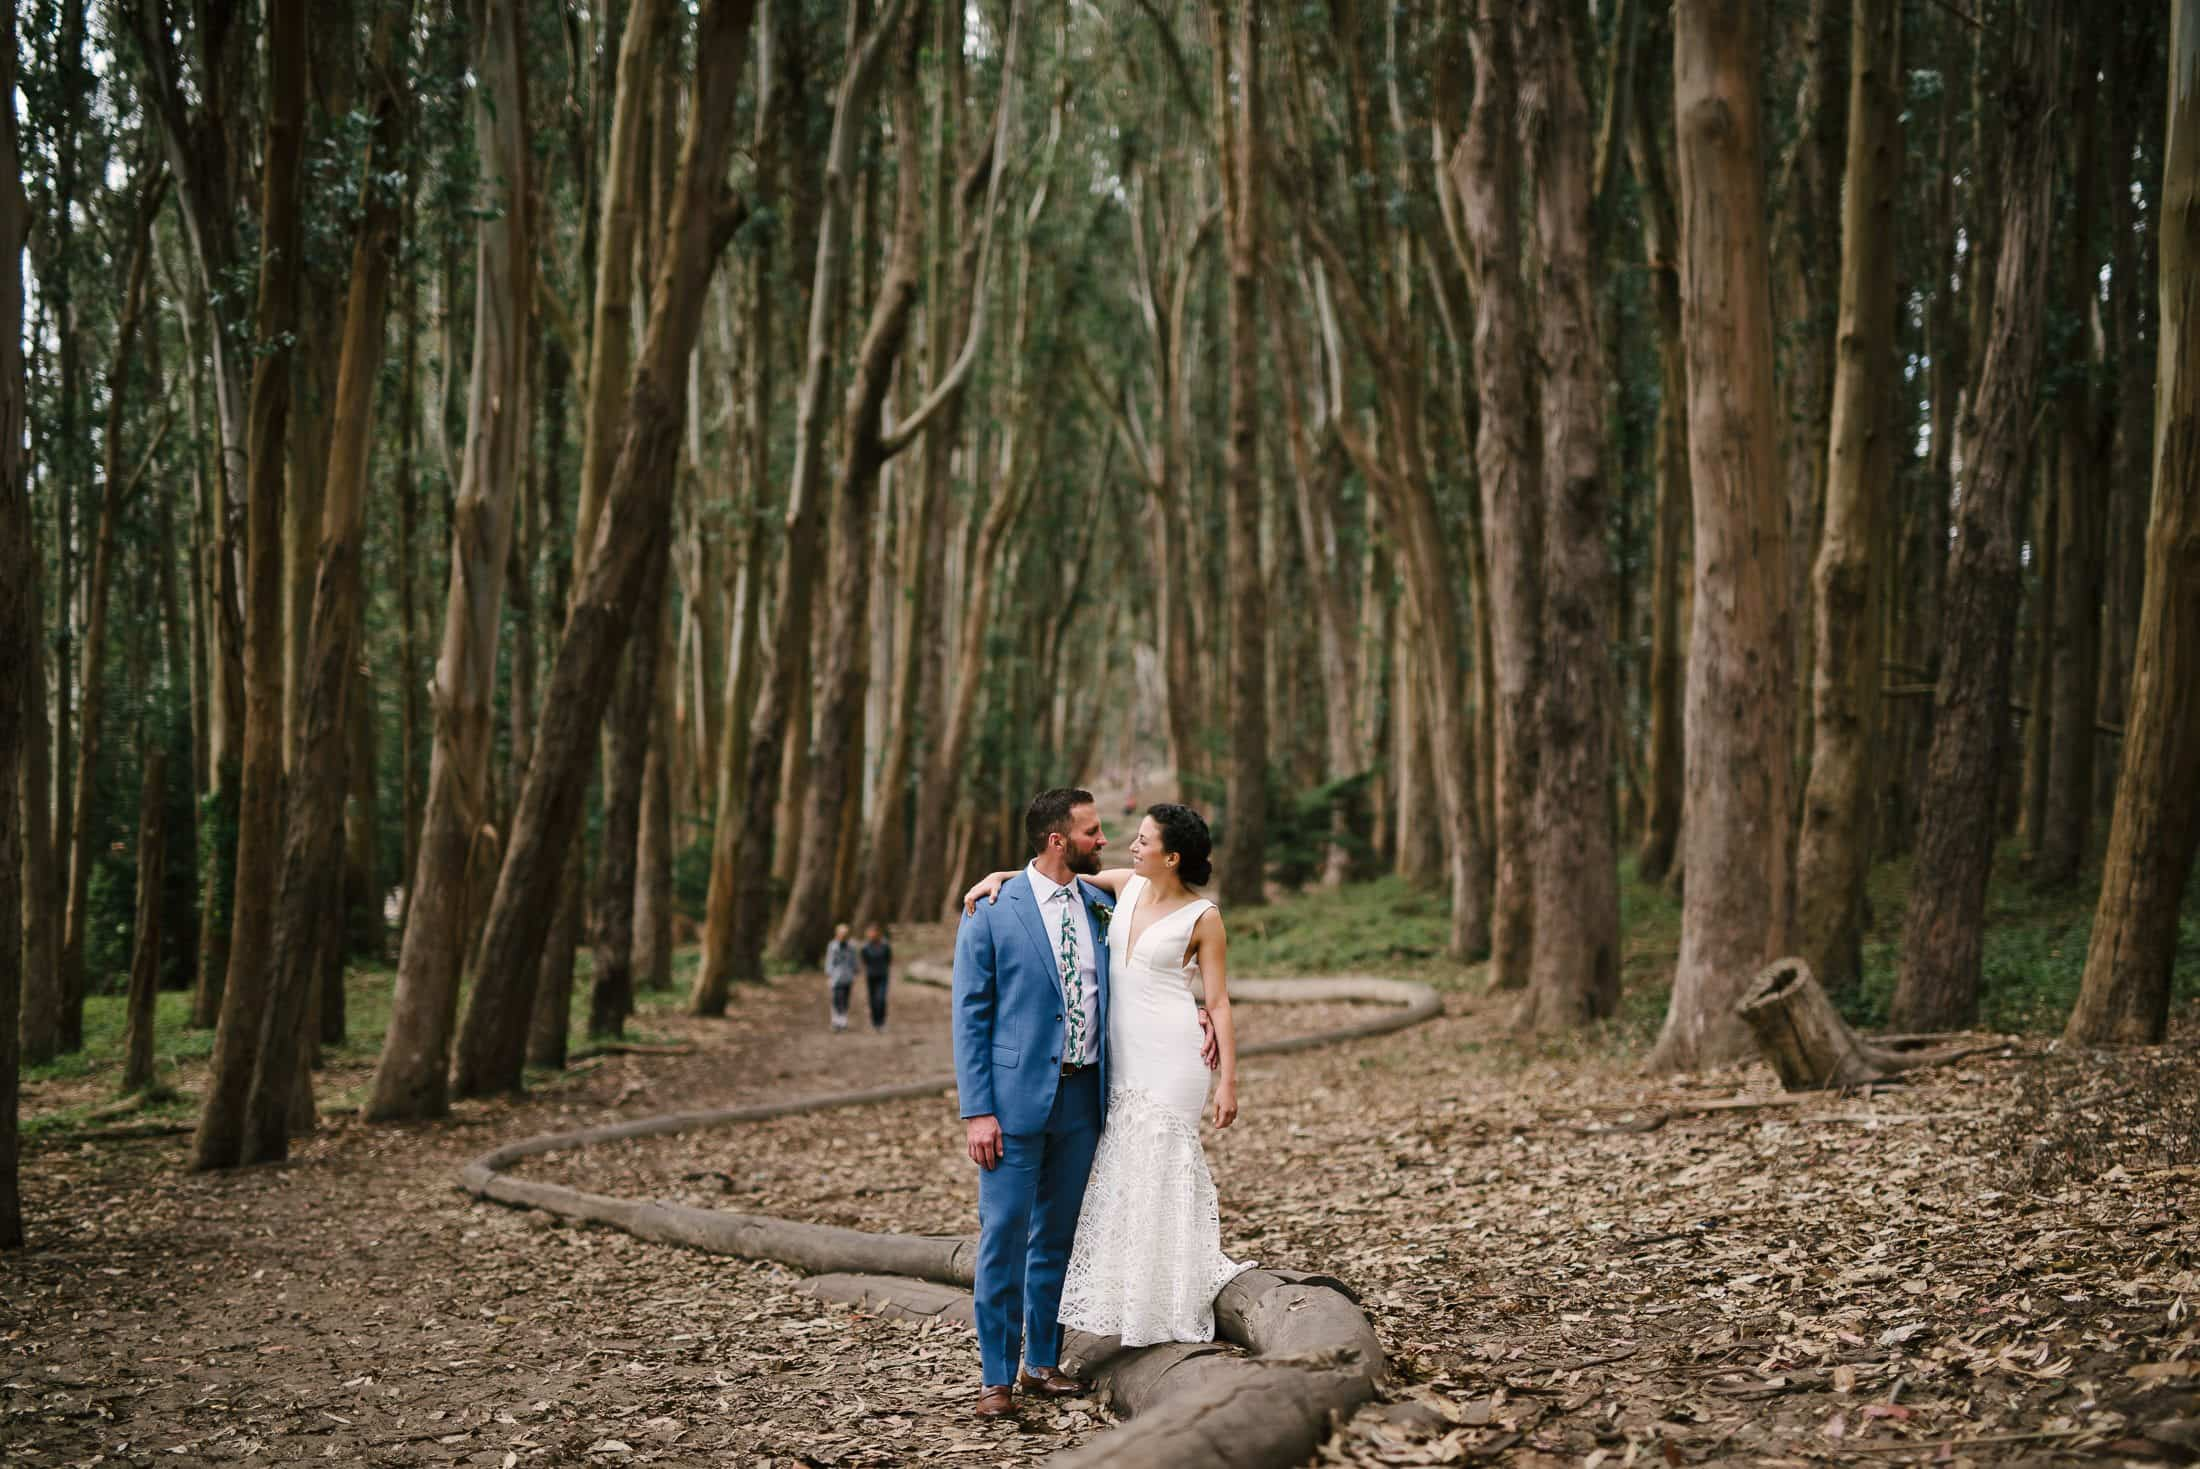 Woodline Wedding Image